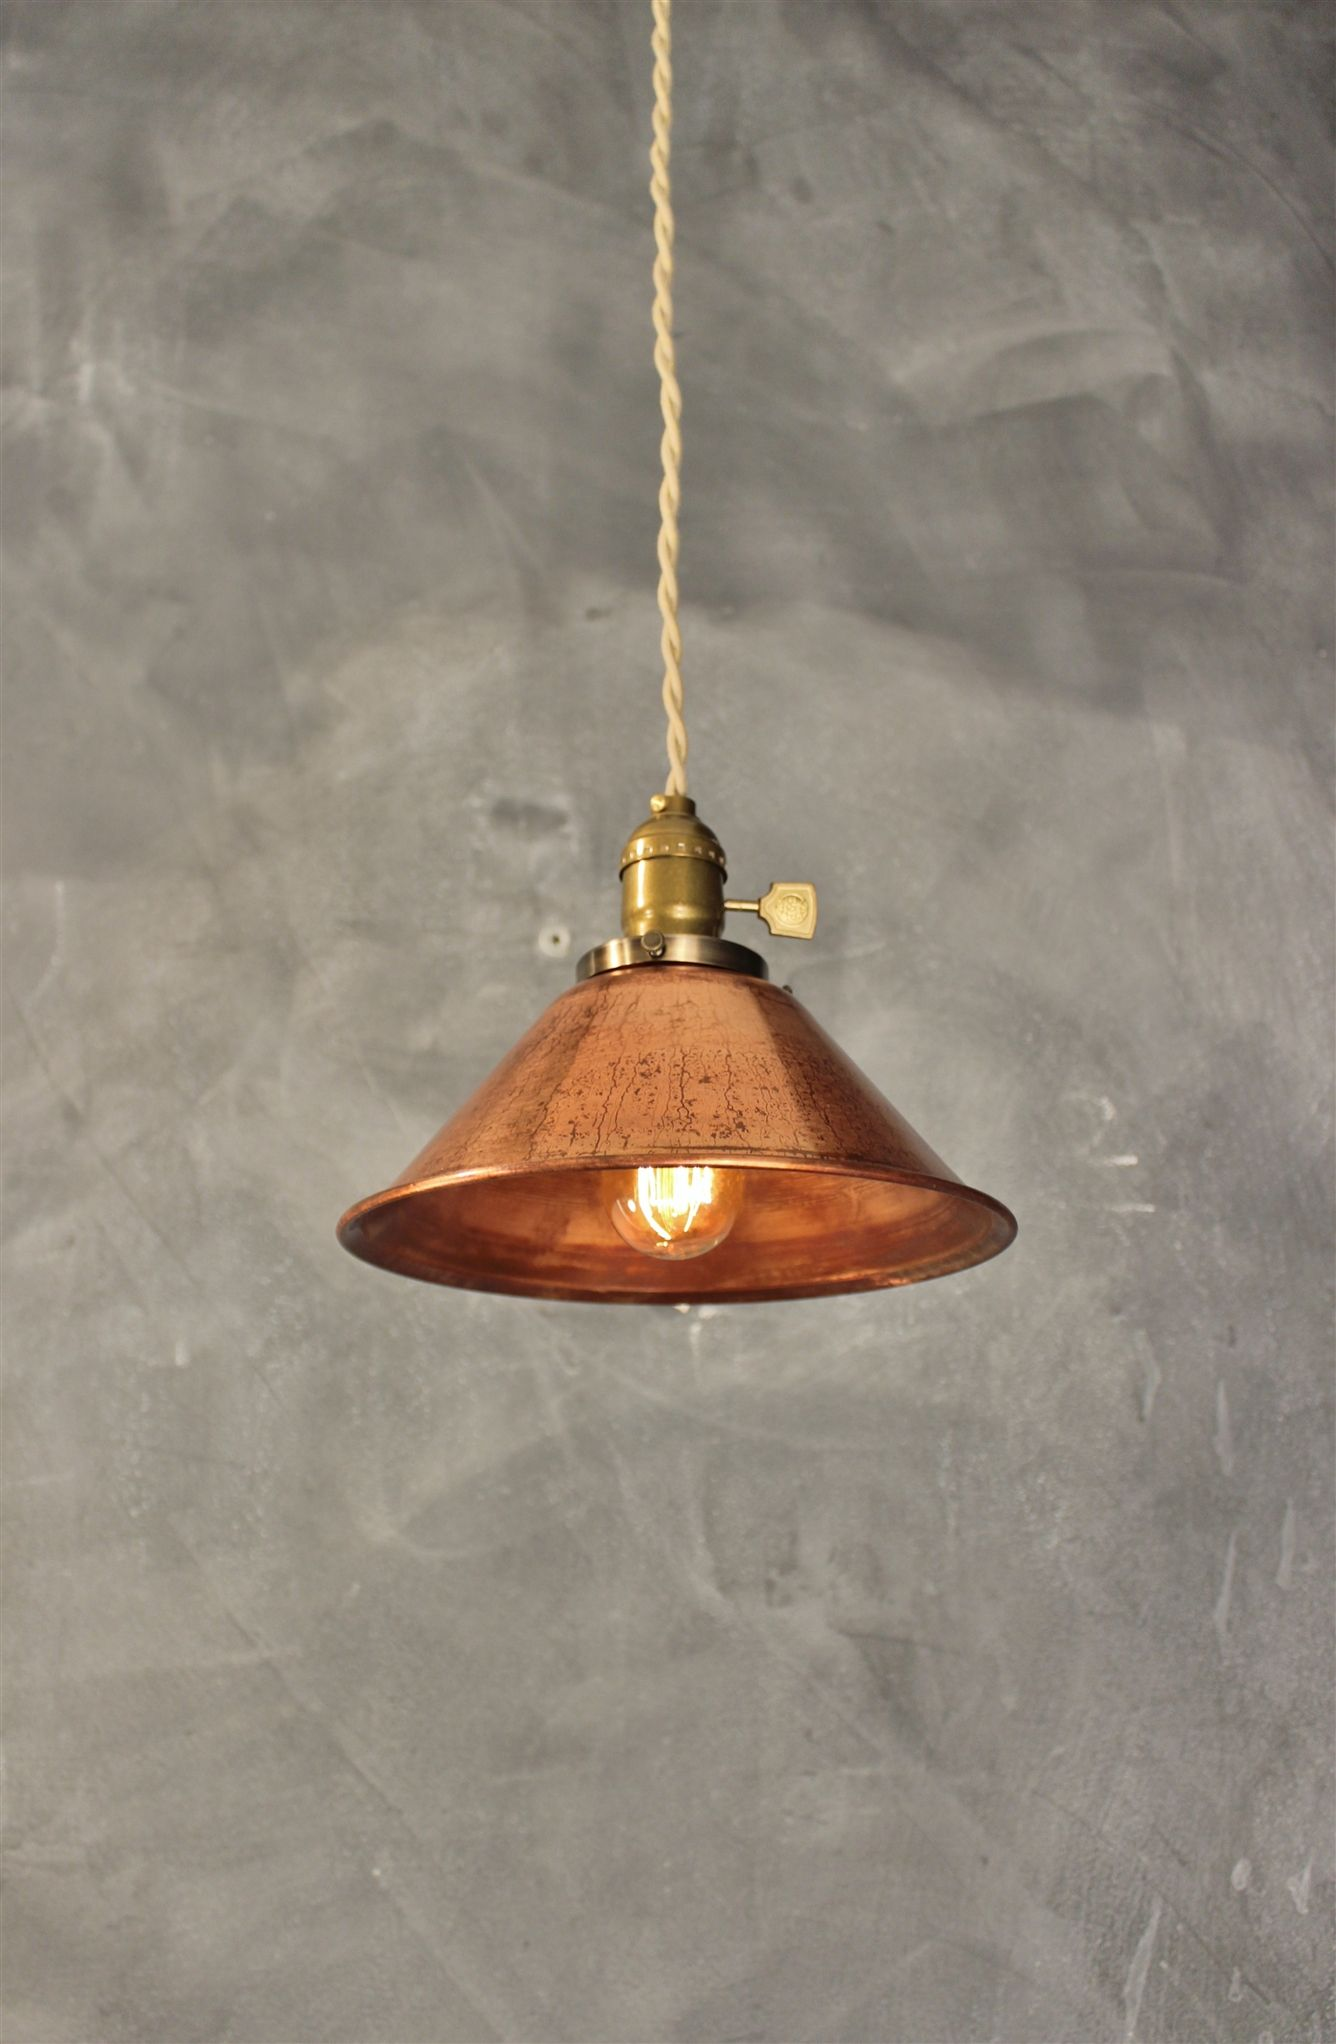 A simple smartlooking vintage style pendant light with a weathered